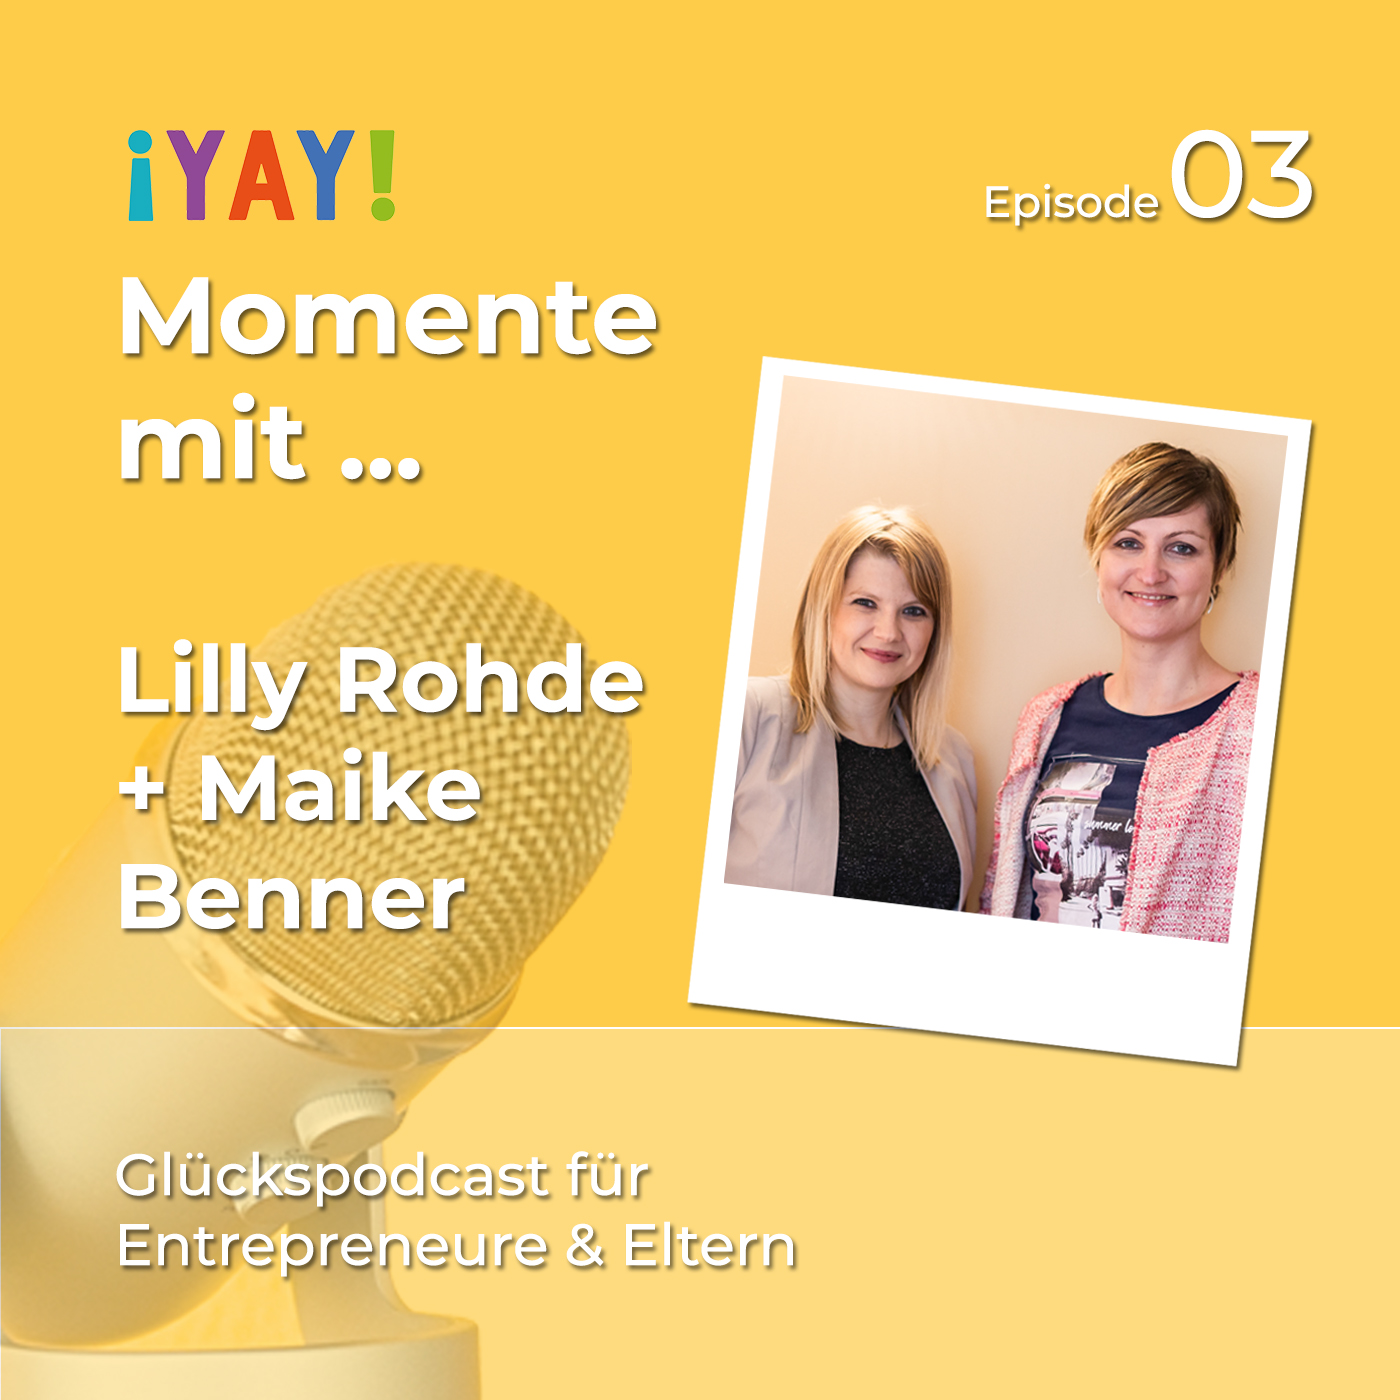 Episode 03: Yay-Momente mit... Maike Benner & Lilly Rohde